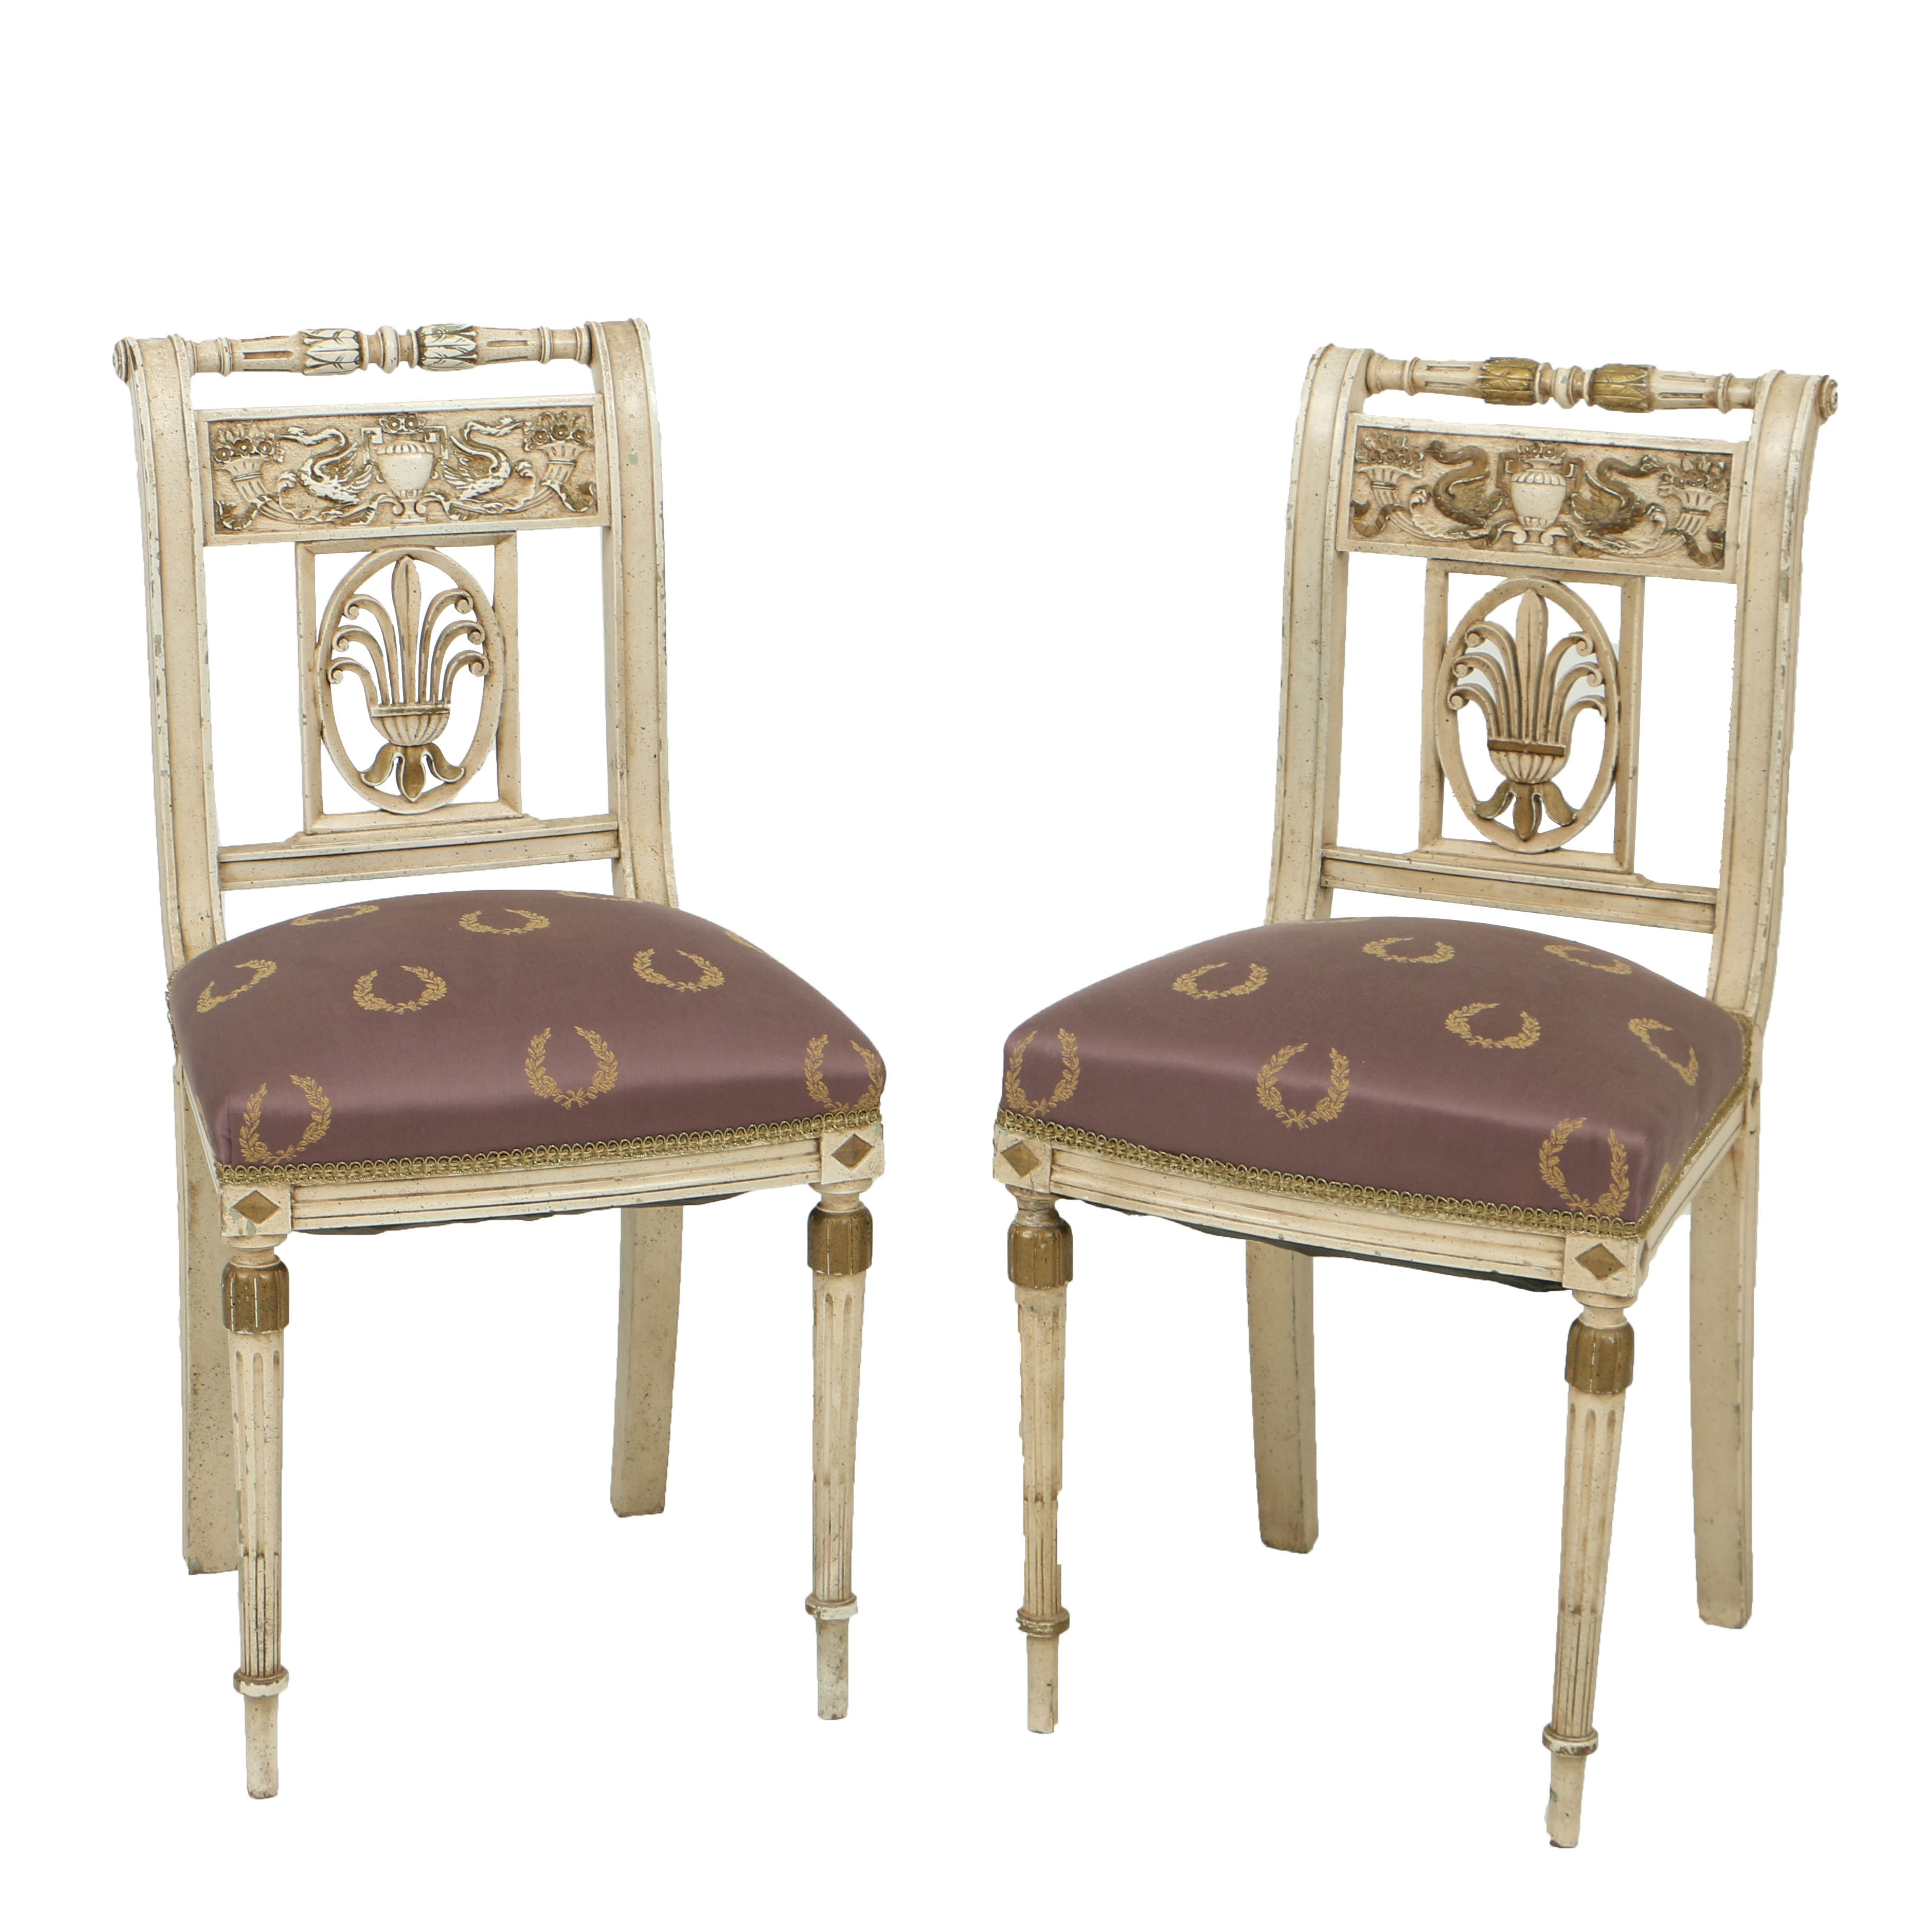 Antique Neoclassical Style Cream-Painted and Parcel-Gilt Side Chairs